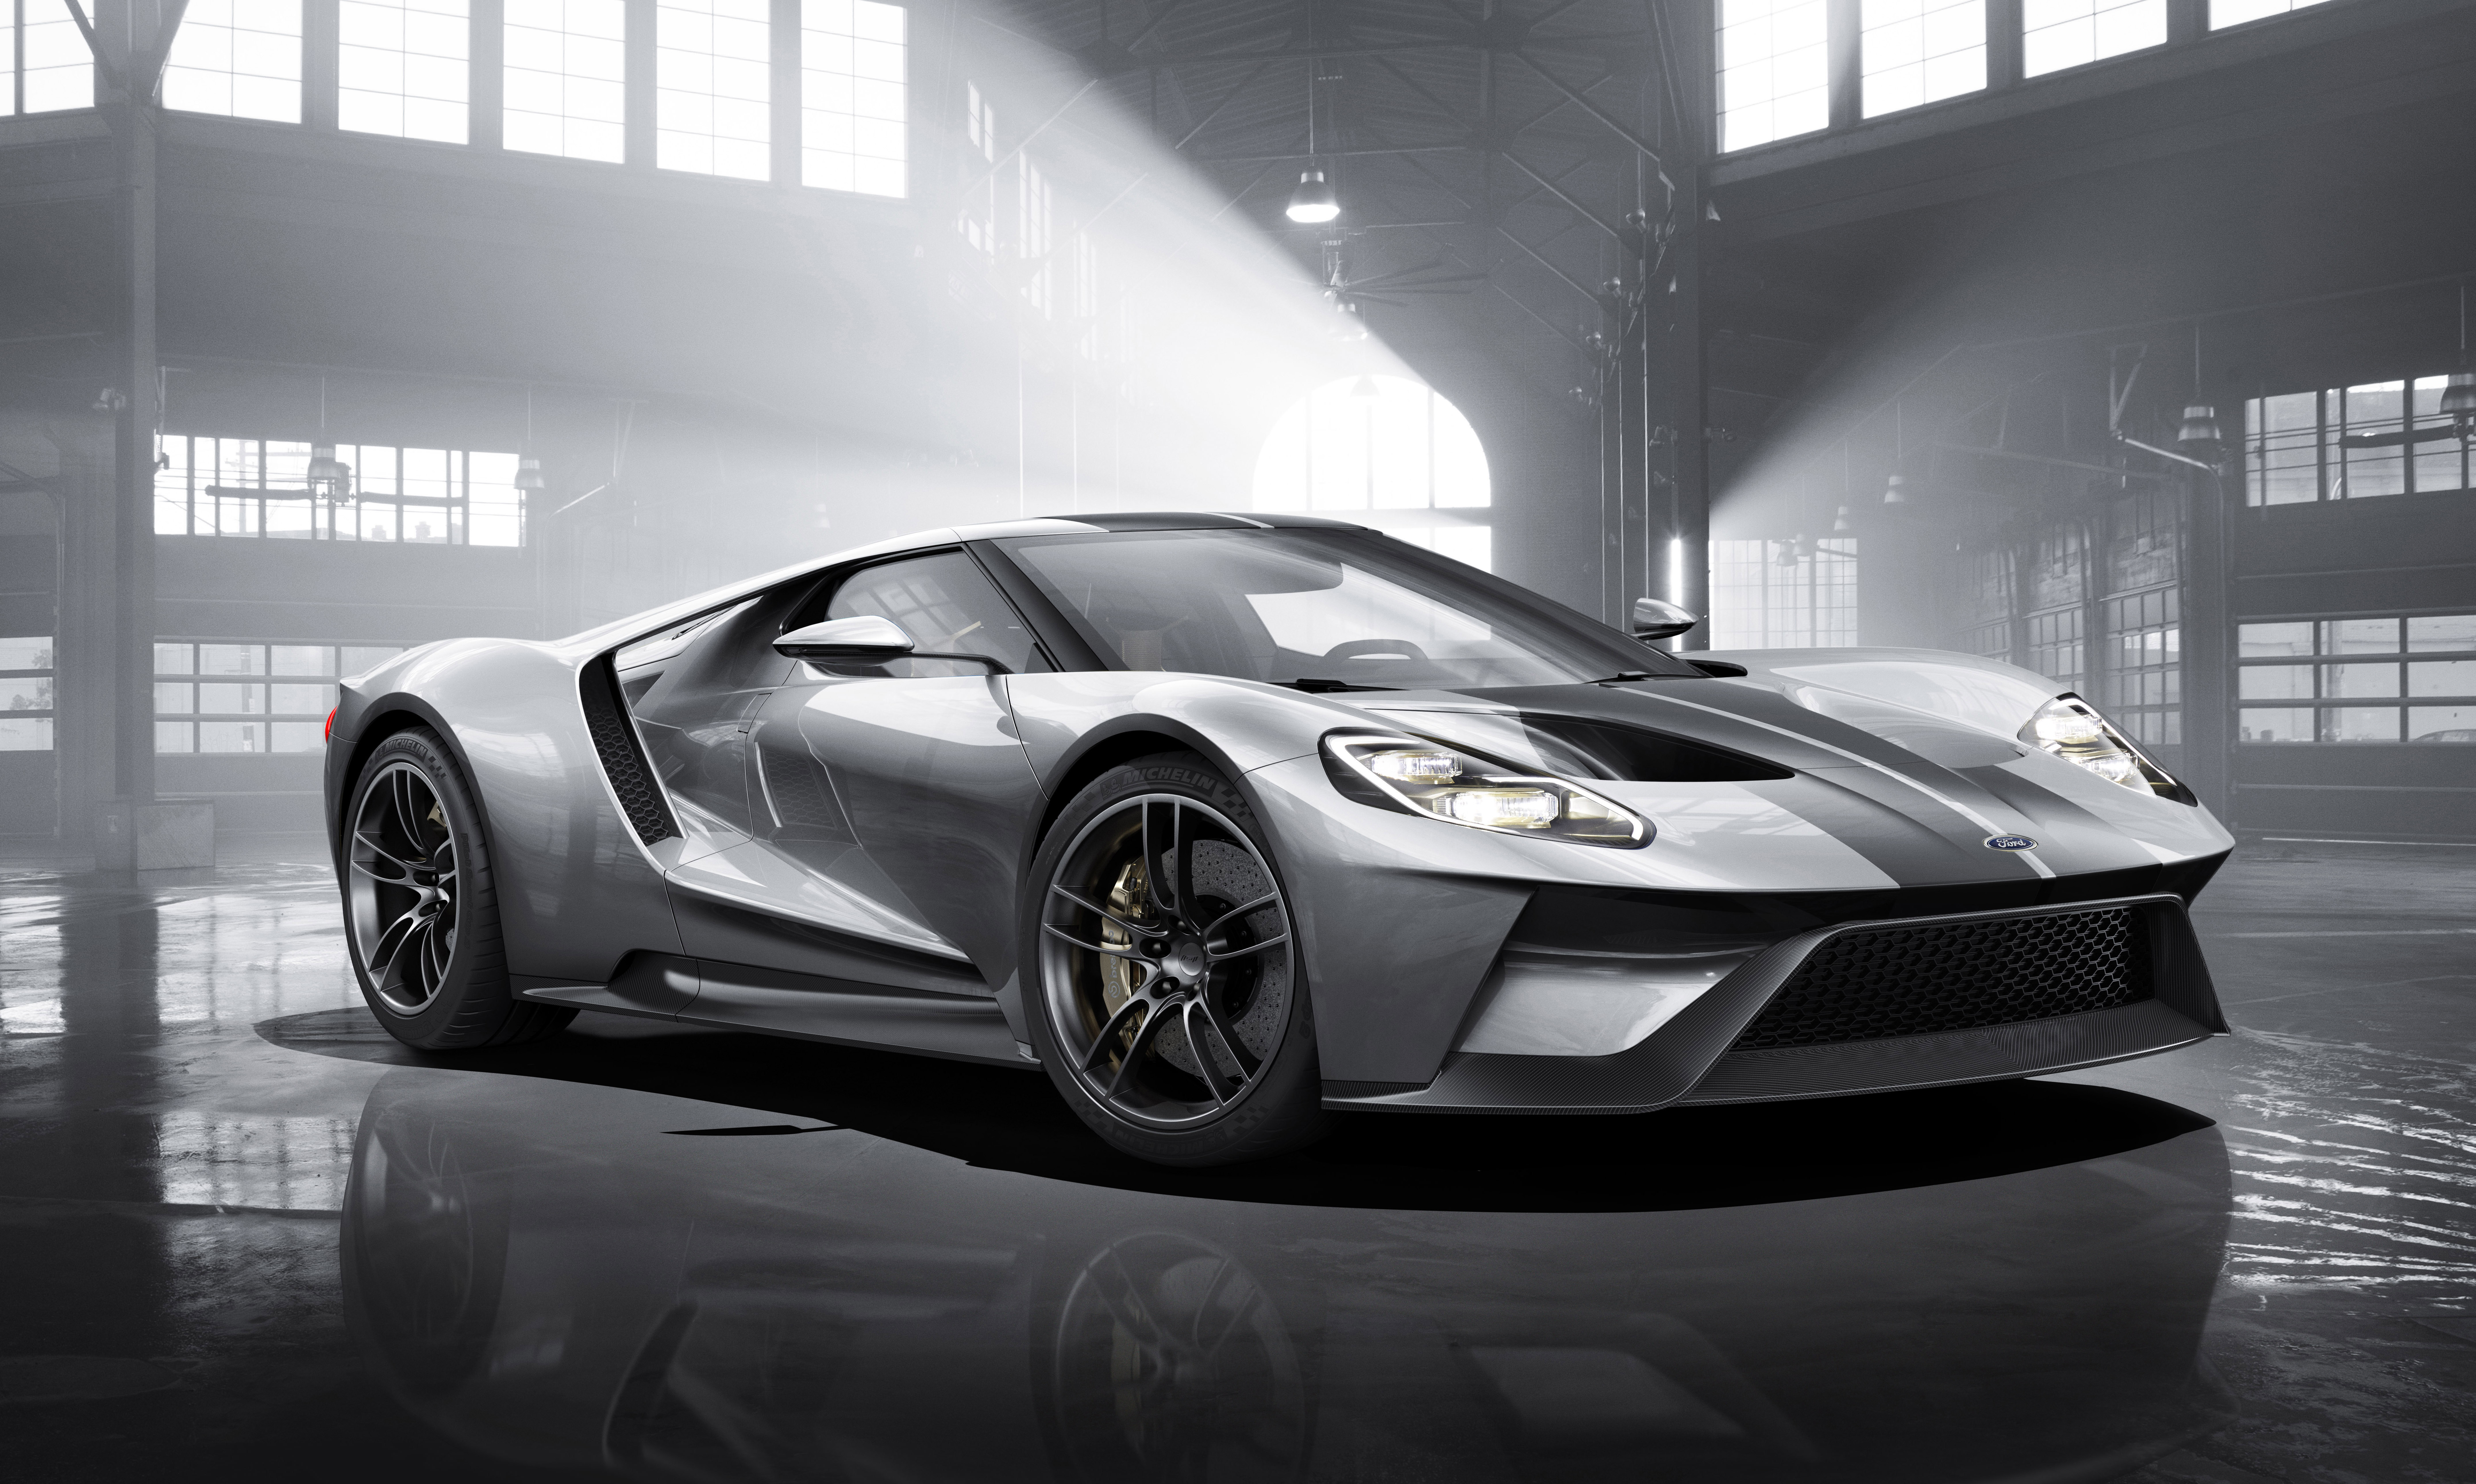 All-new Ford GT in Liquid Silver, L-R, 3/4 Front Shown, February 2015